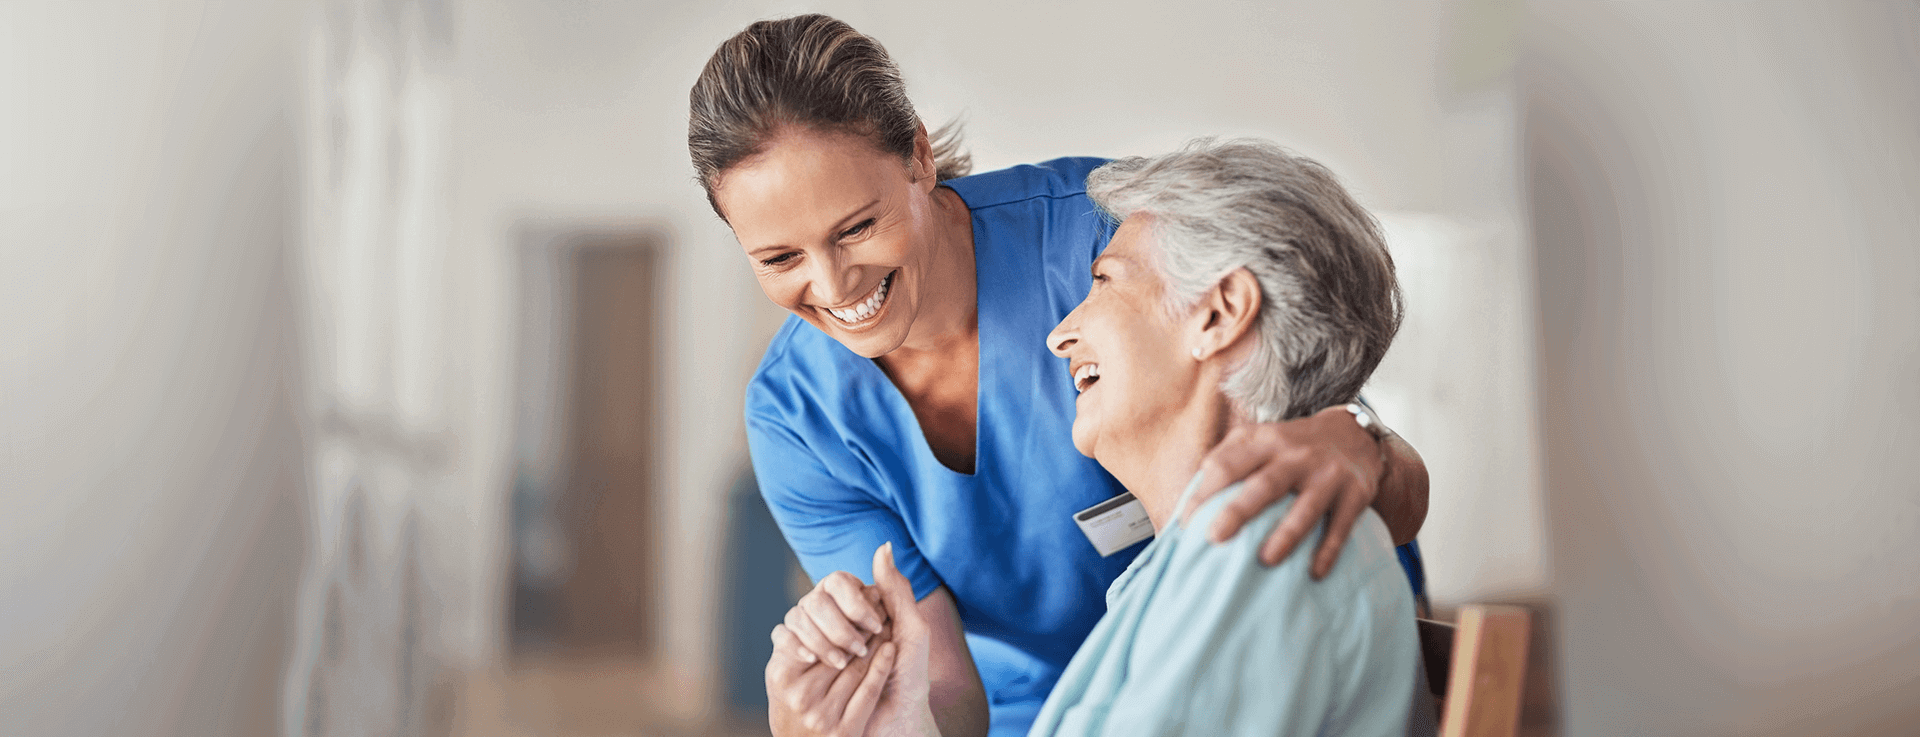 Caregiver and Elderly Woman - Beaverton, OR - Serenity Home Care